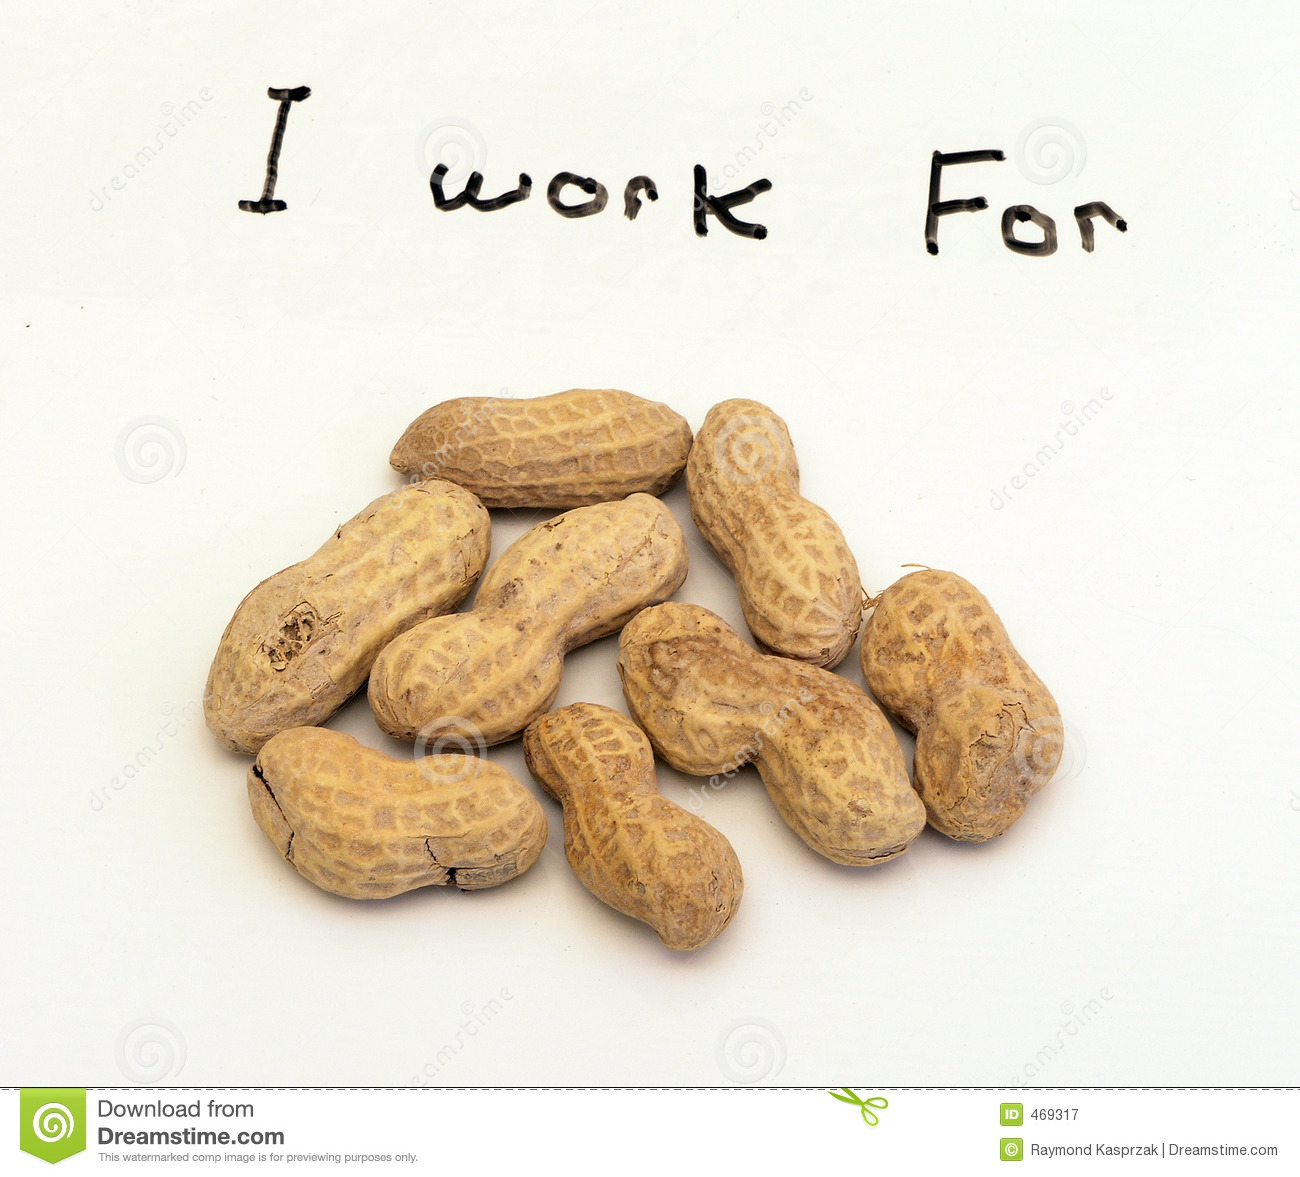 Download I work For Peanuts stock image. Image of cheap, seed, arachis - 469317